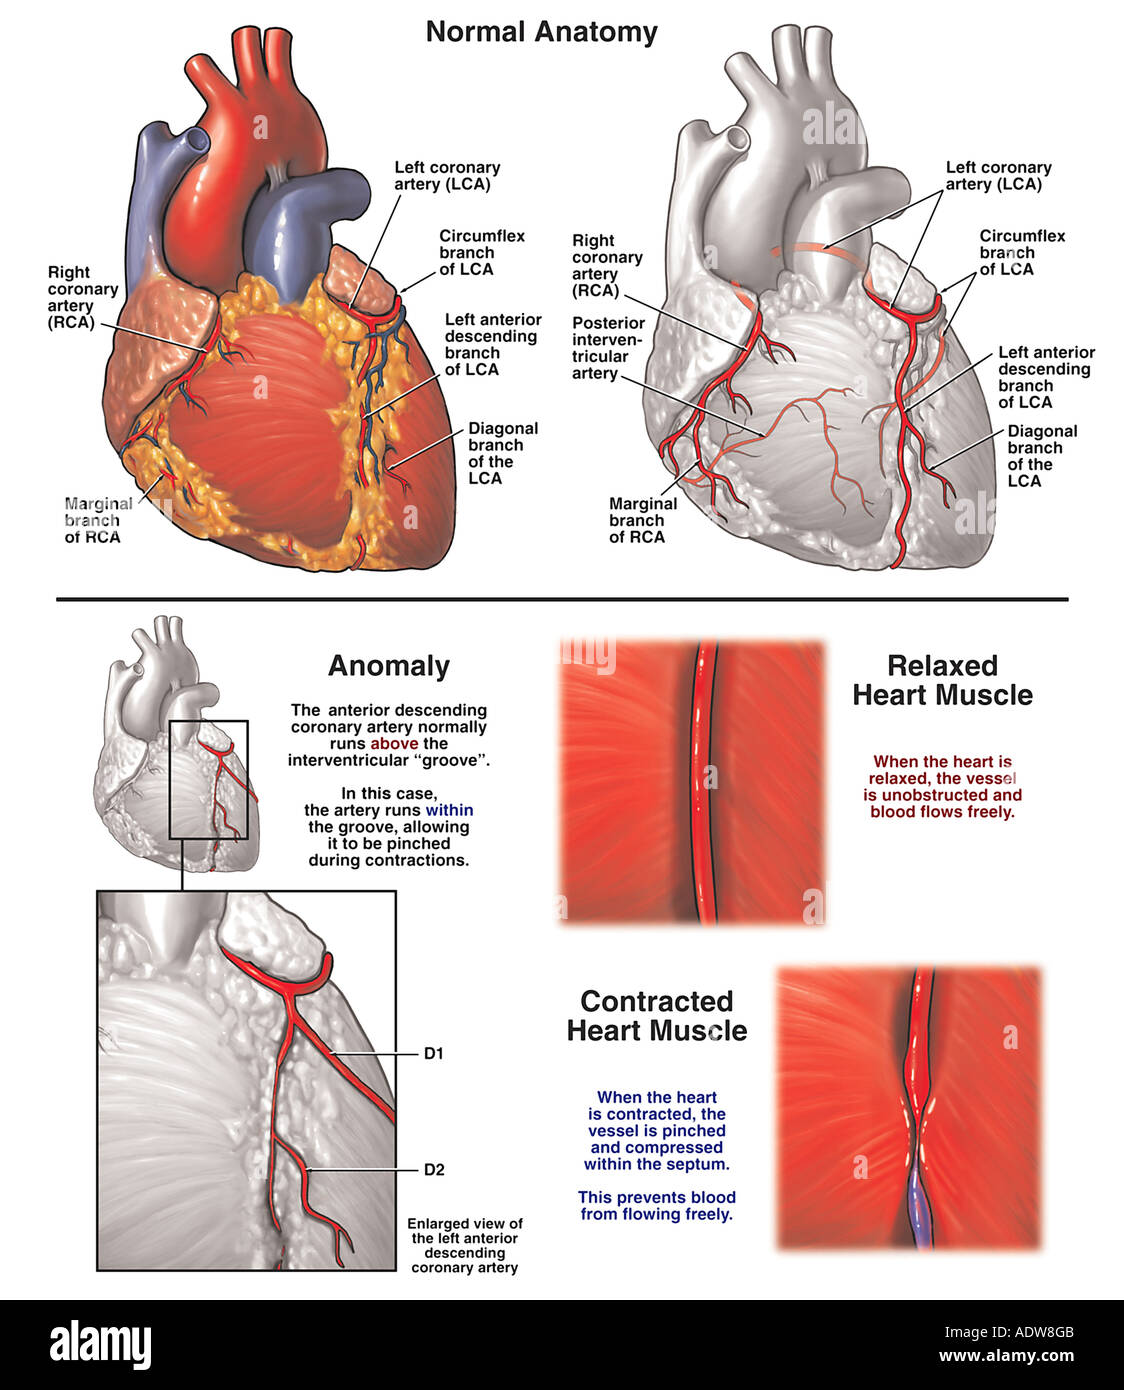 Anatomy of the heart with abnormal anomalous intramuscular coronary artery